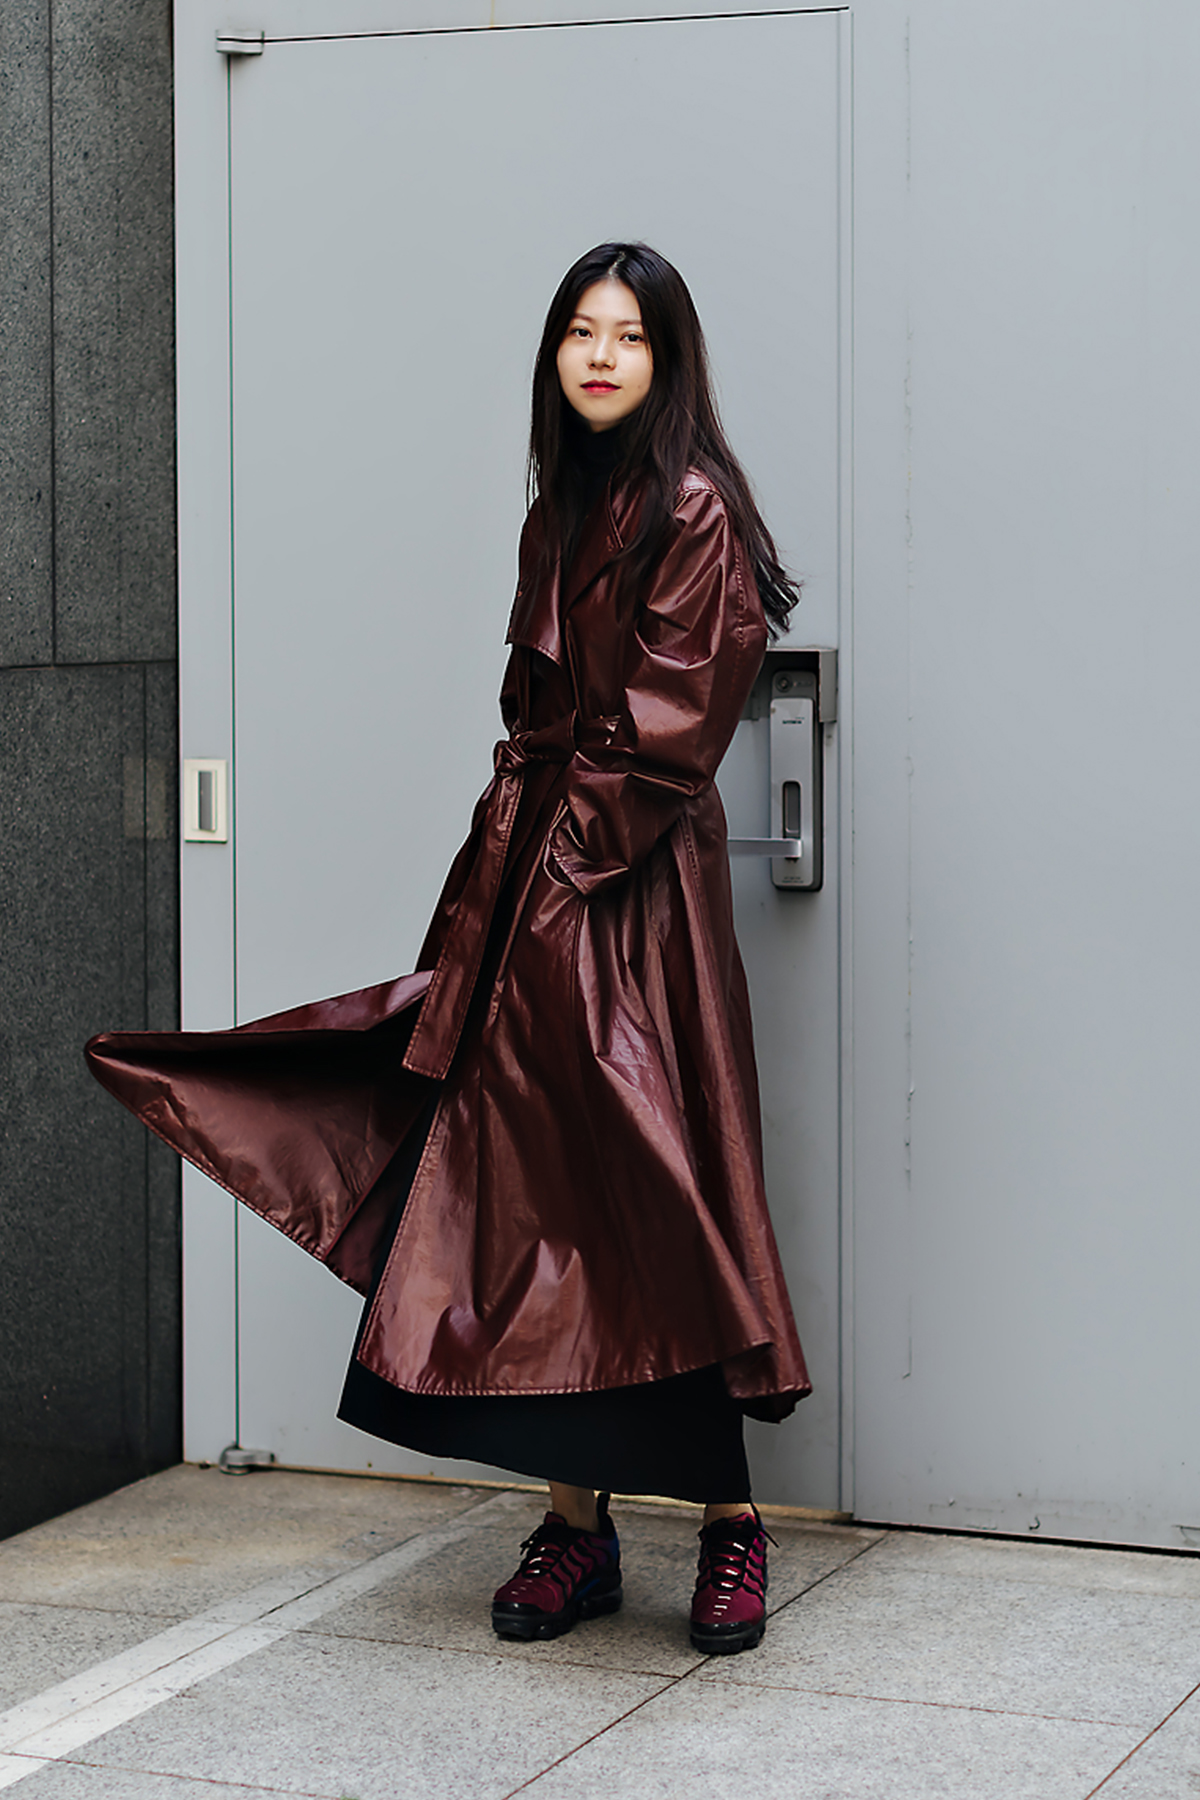 Women fall street style fourth week of october 2018 in seoul 7